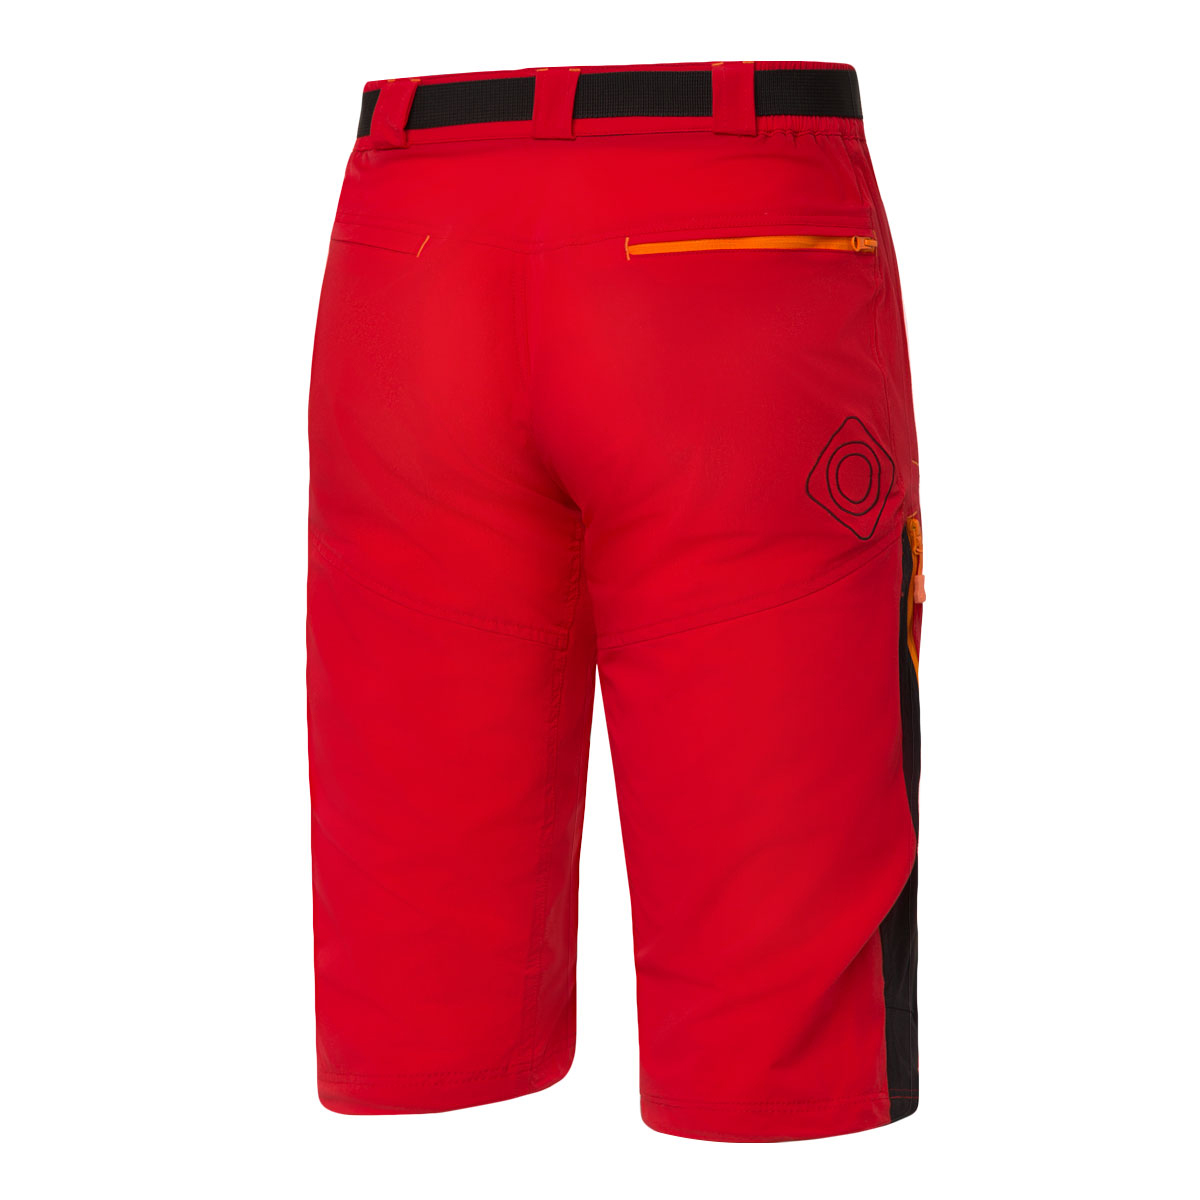 MAN'S OSPIKA 3/4 STRETCH PANT RED